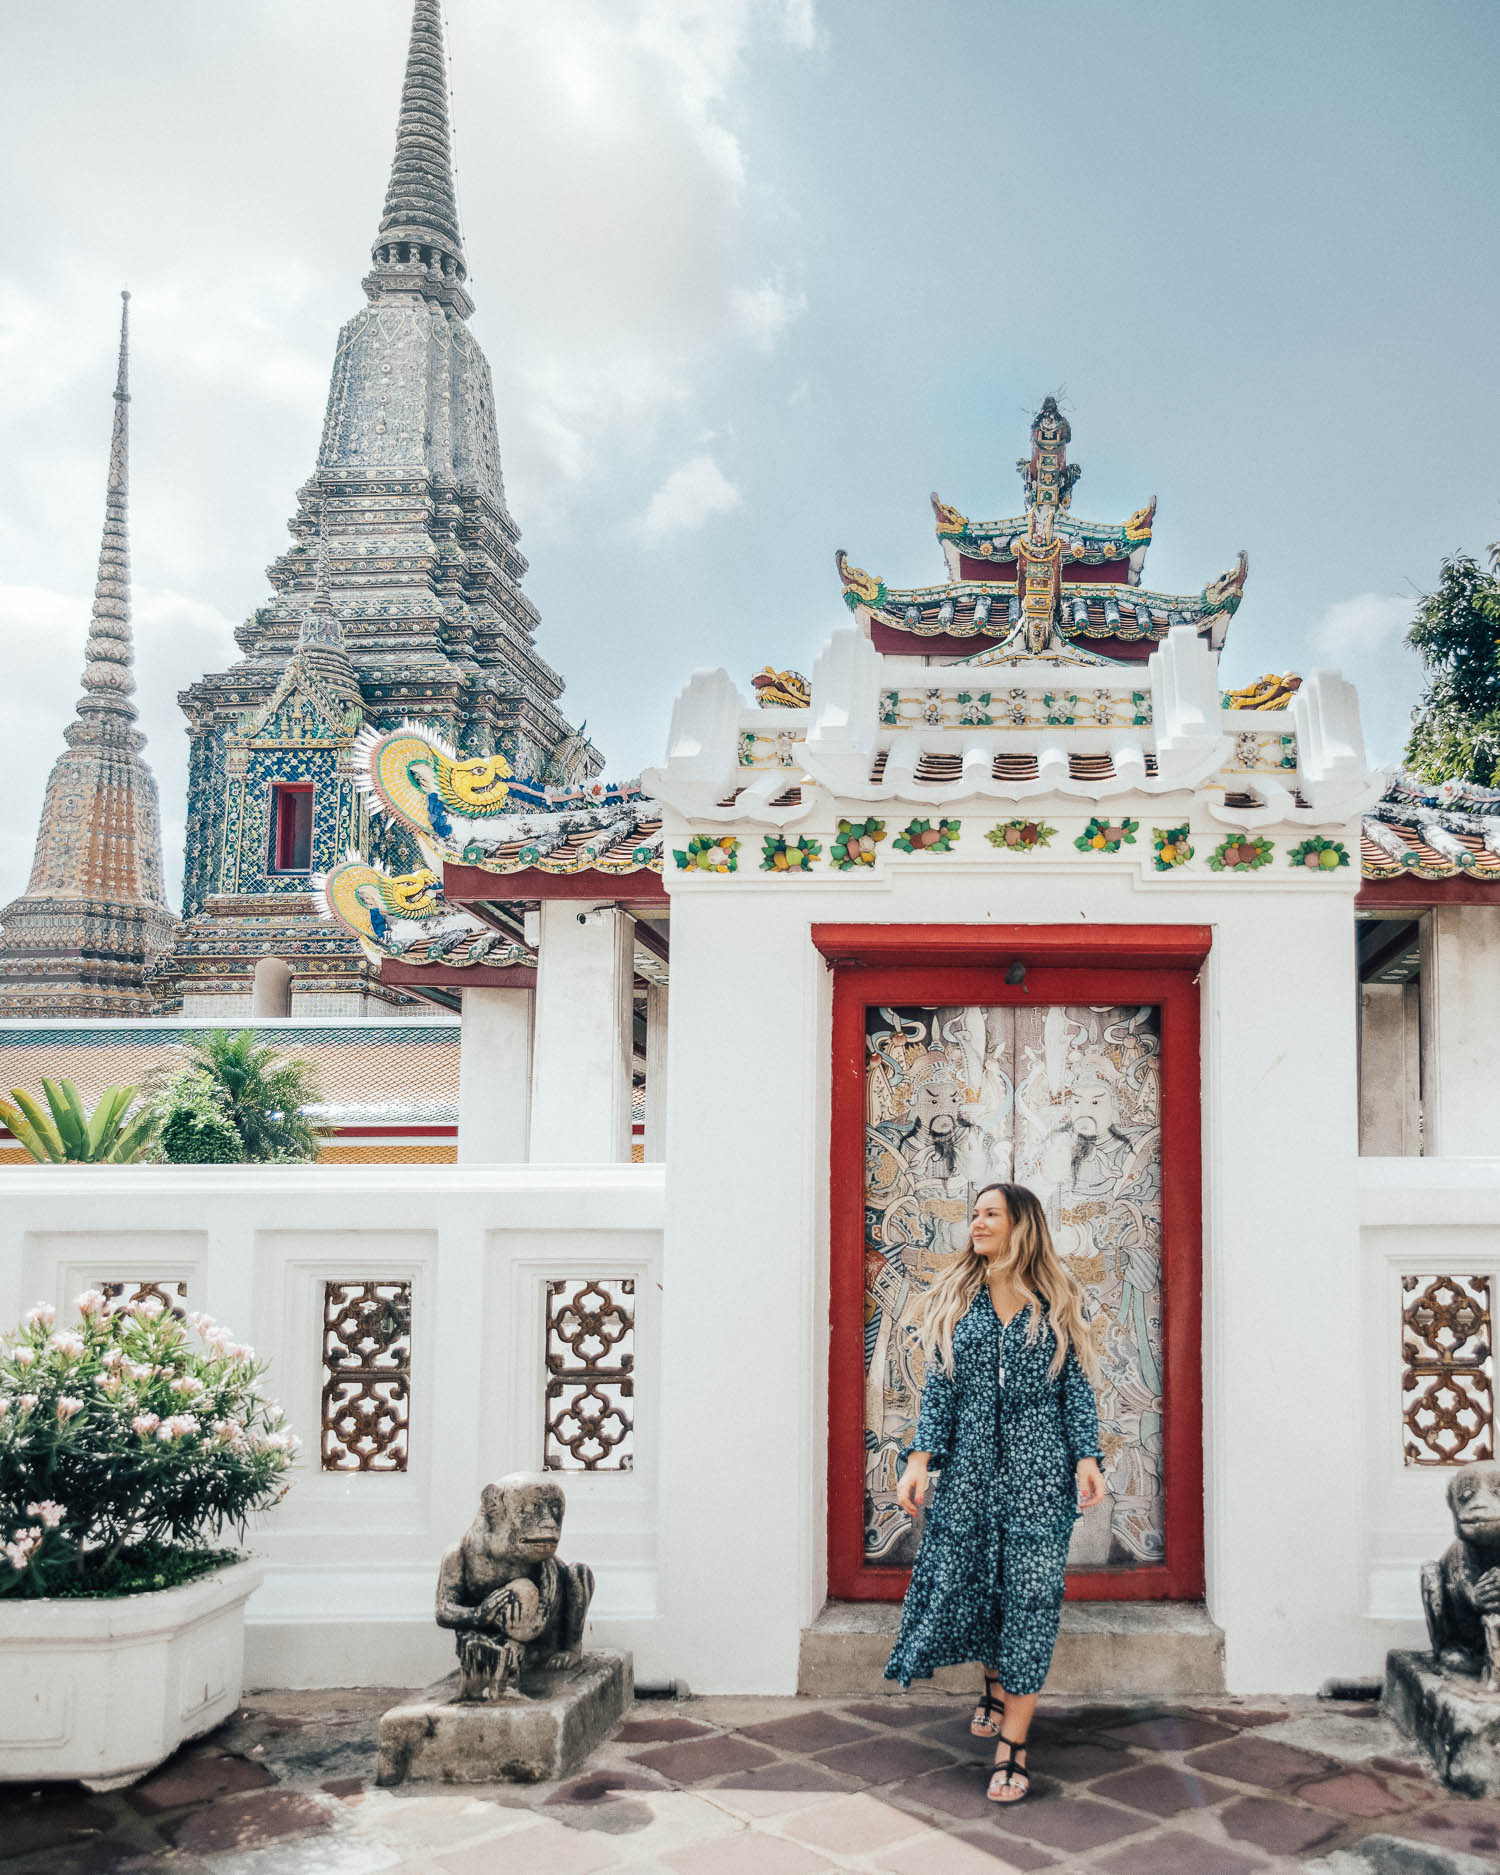 Adaras at Wat Pho in Bangkok, Thailand - What to wear when visiting temples